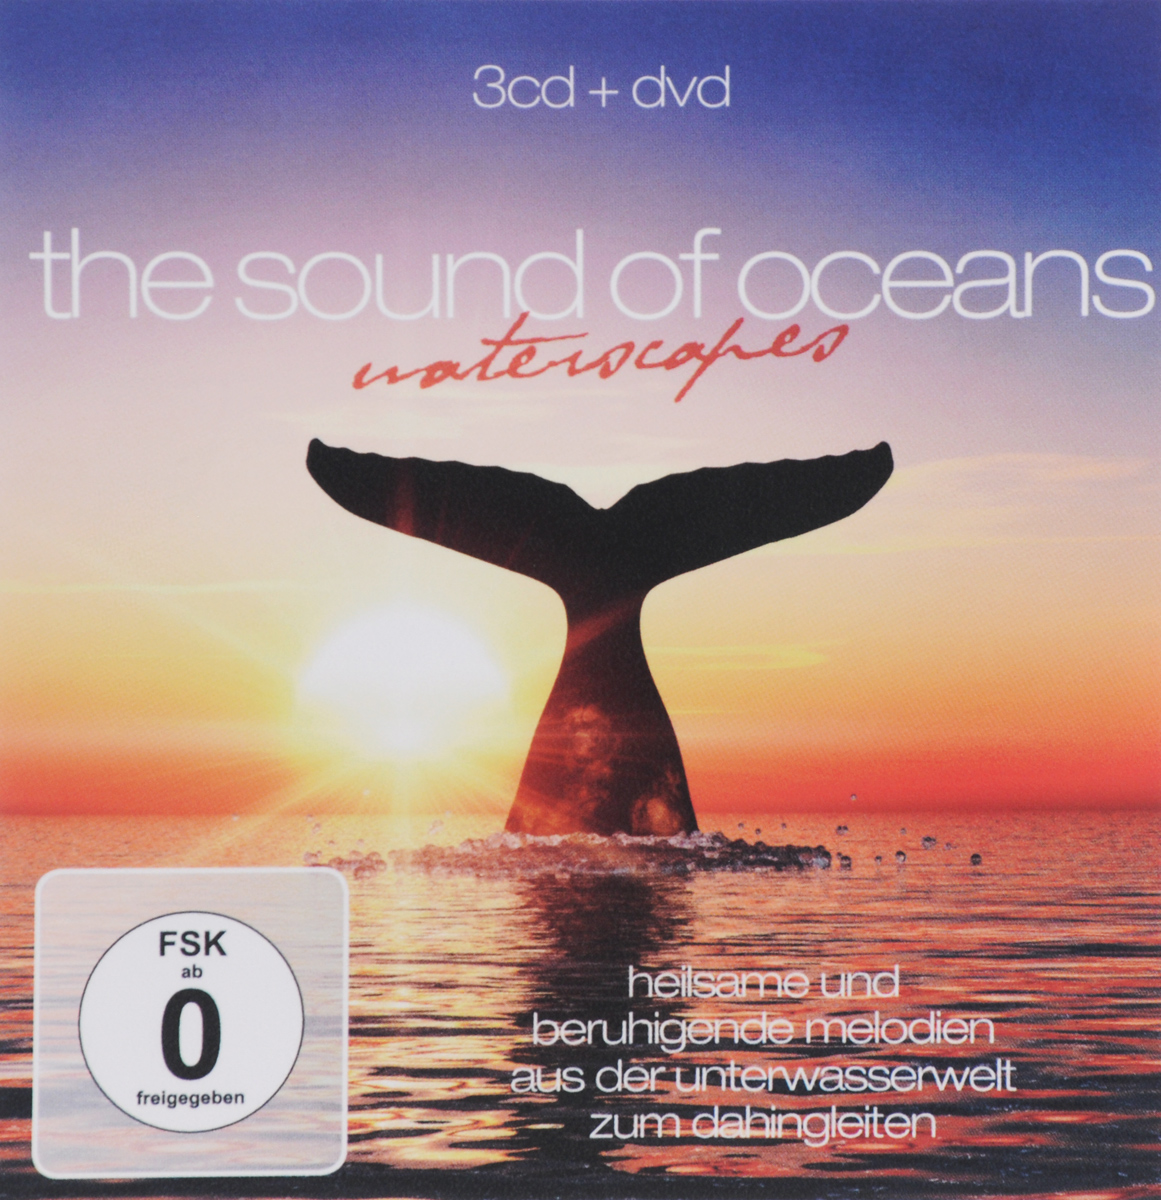 Рхабан Али Шей,Yuma Haruto Paliashvili The Sound Of Oceans. Waterscapes (3 CD + DVD) yuma haruto paliashvili asian massage 3 cd dvd